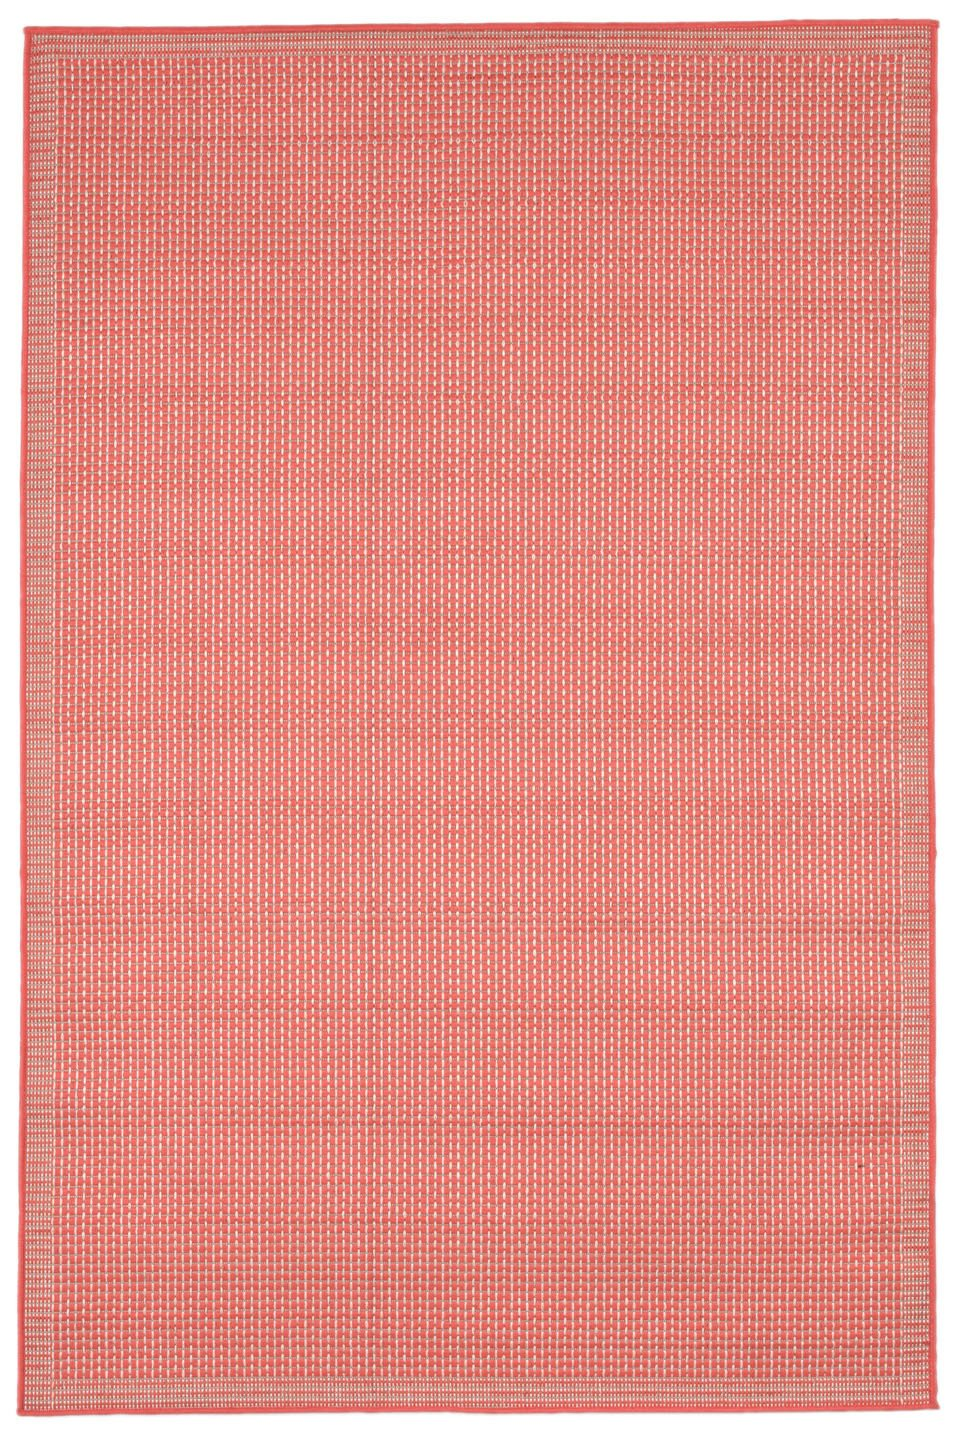 Trans-Ocean Imports TER58176227 Terrace Collection Orange Finish Everywear Rug from Trans-Ocean